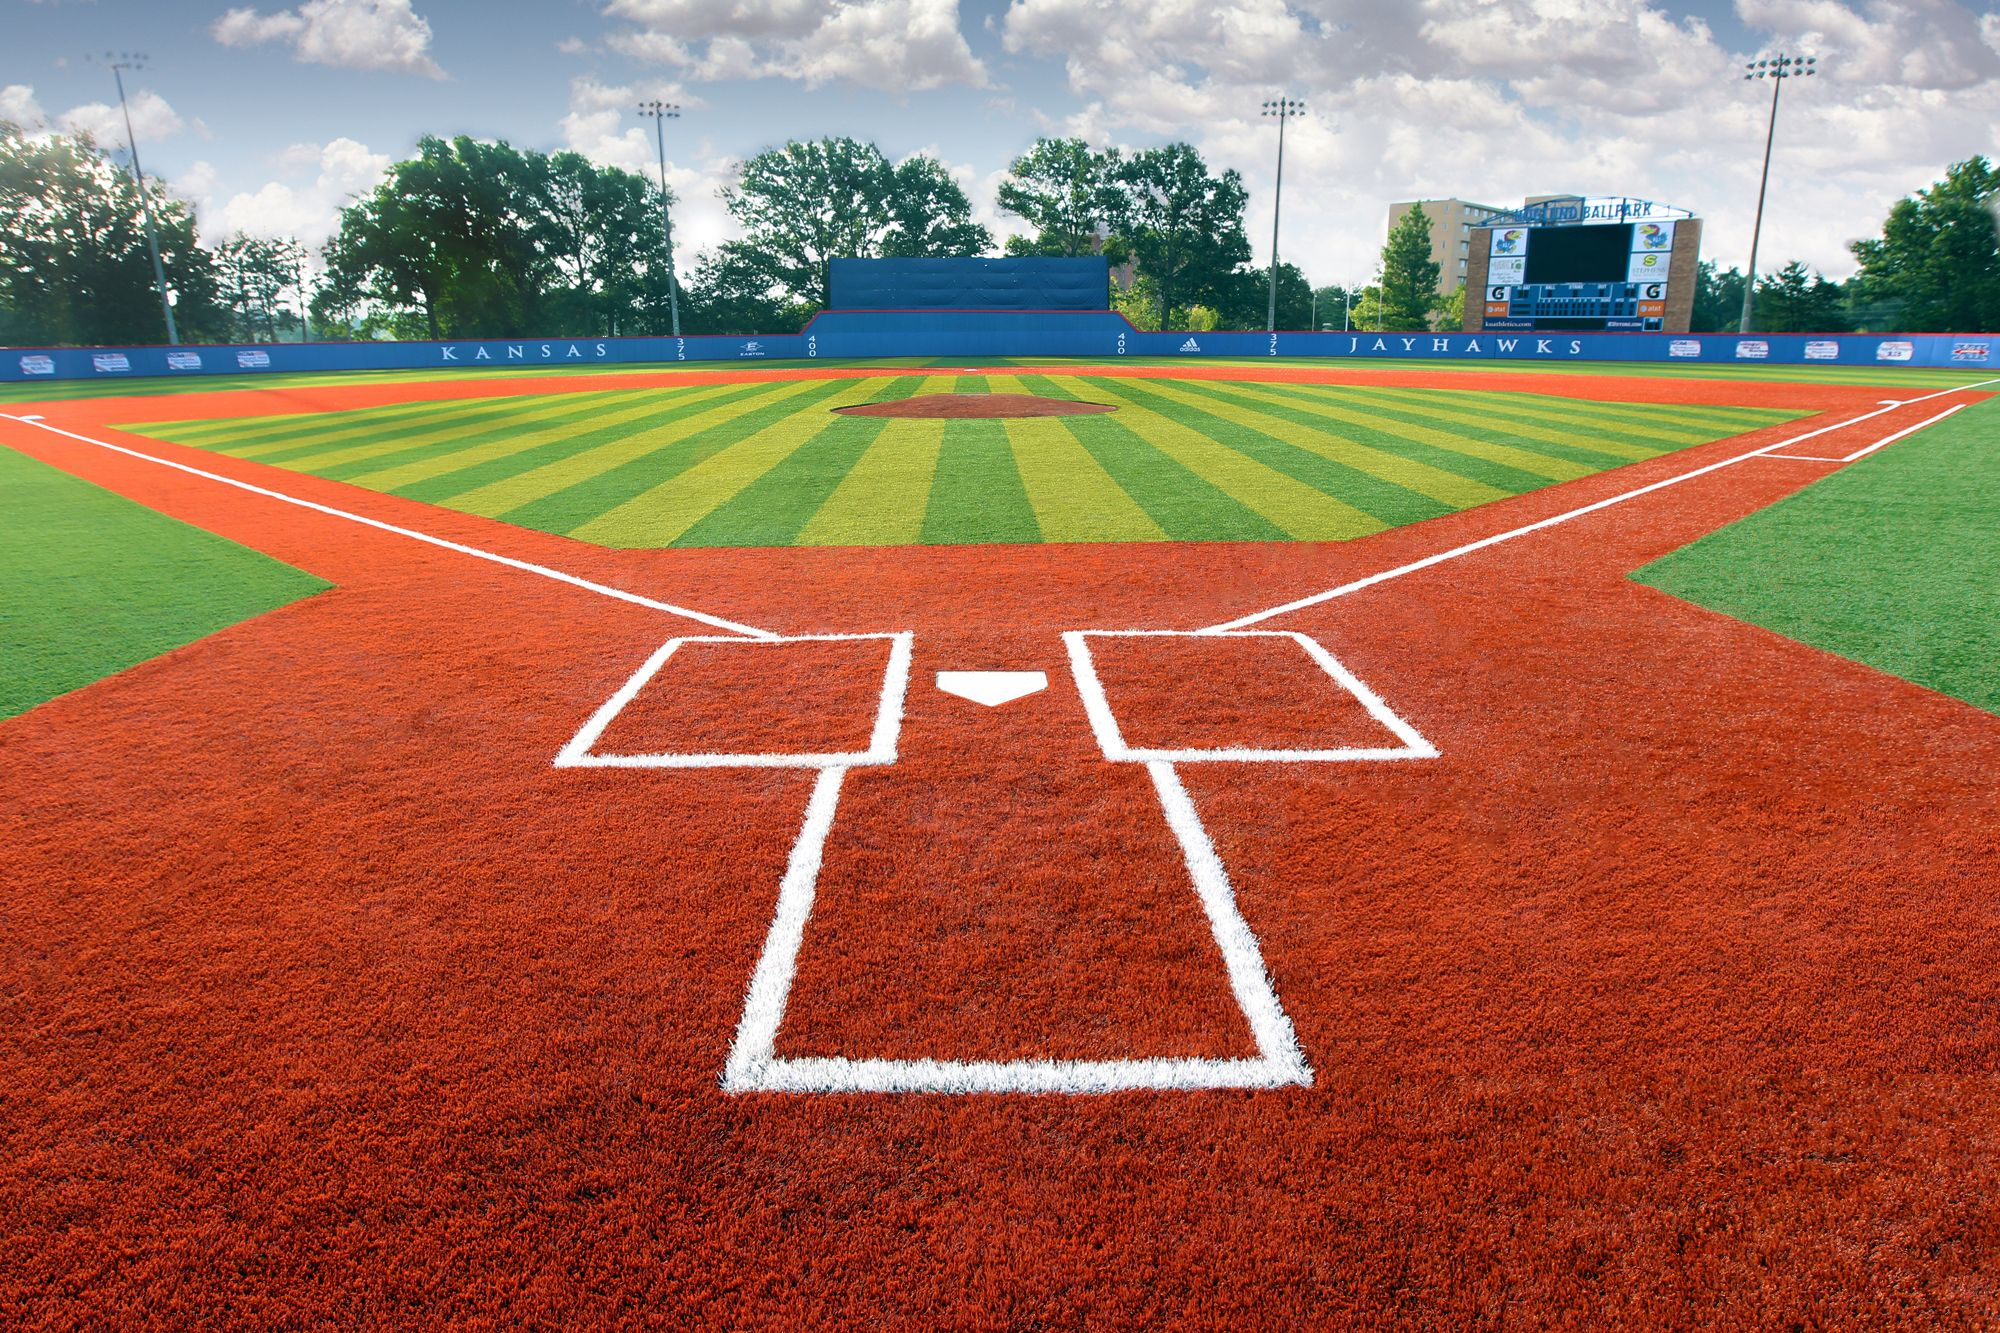 University Of Kansas Hoglund Ballpark 135 003 Square Feet Of Astroturf Gameday Grass 3d